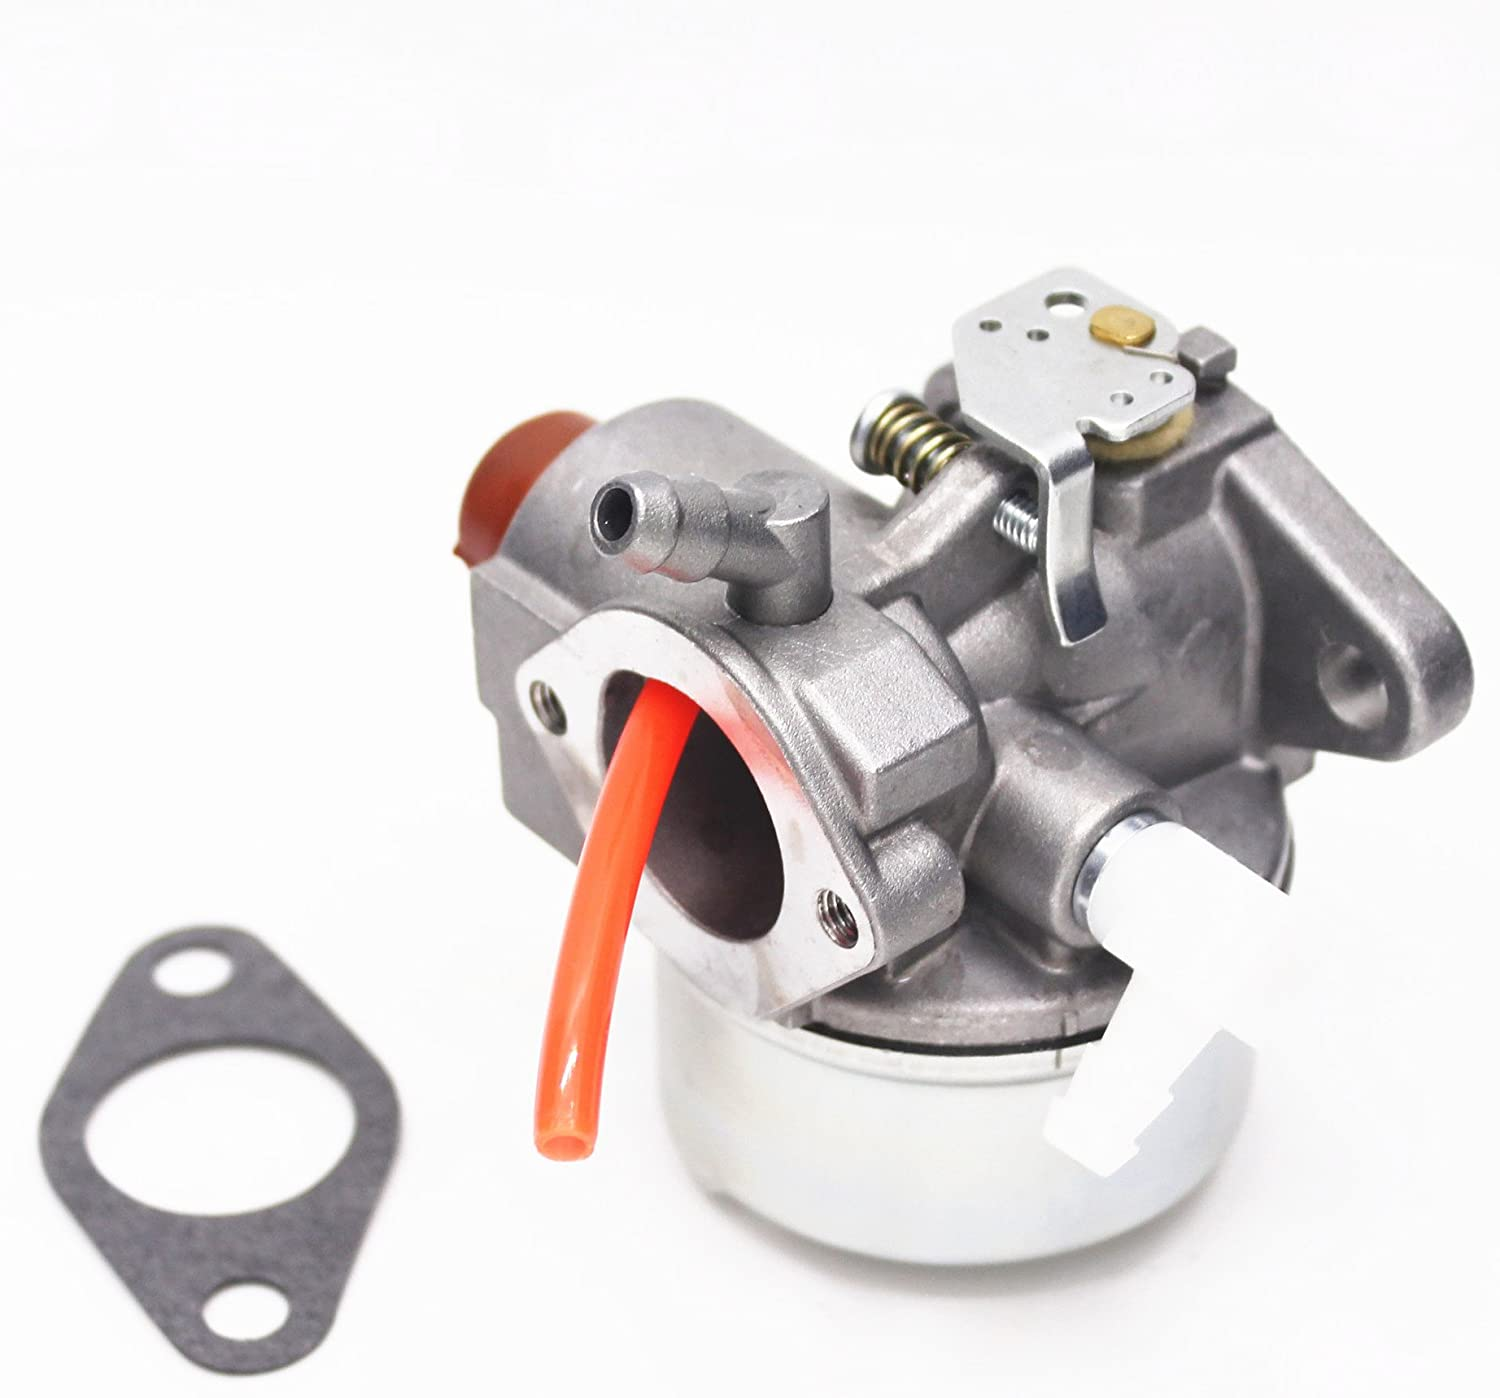 MOTOR CARBURETOR Carb for Tecumseh 640350 640271 Sears Craftsman Primer Bulb